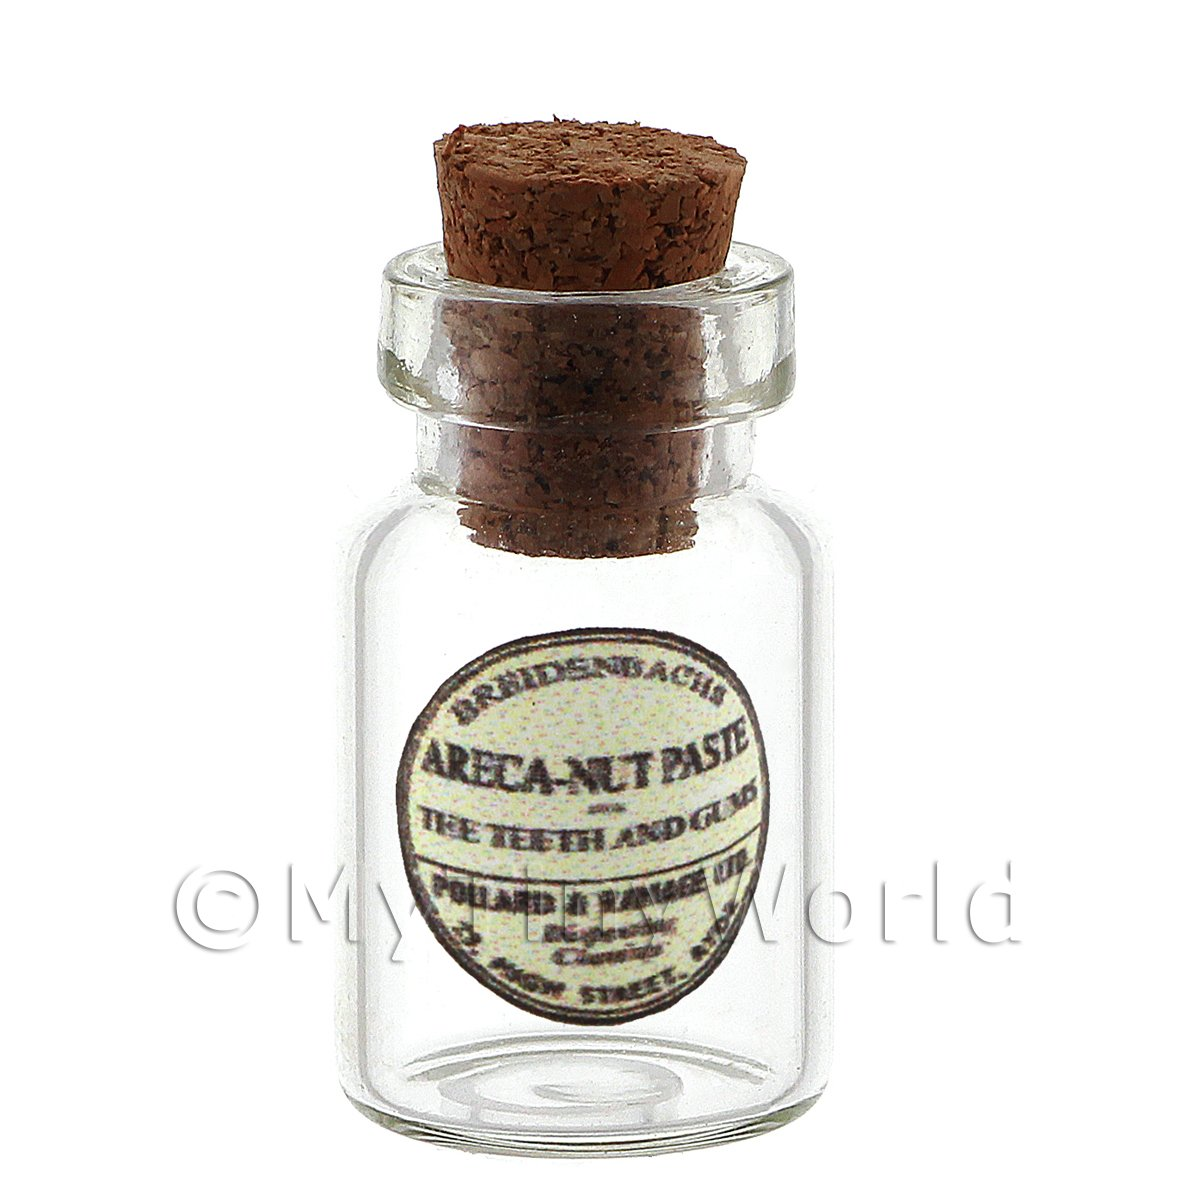 Dolls House Miniature Areca Nut Paste Glass Apothecary Ointment Jar